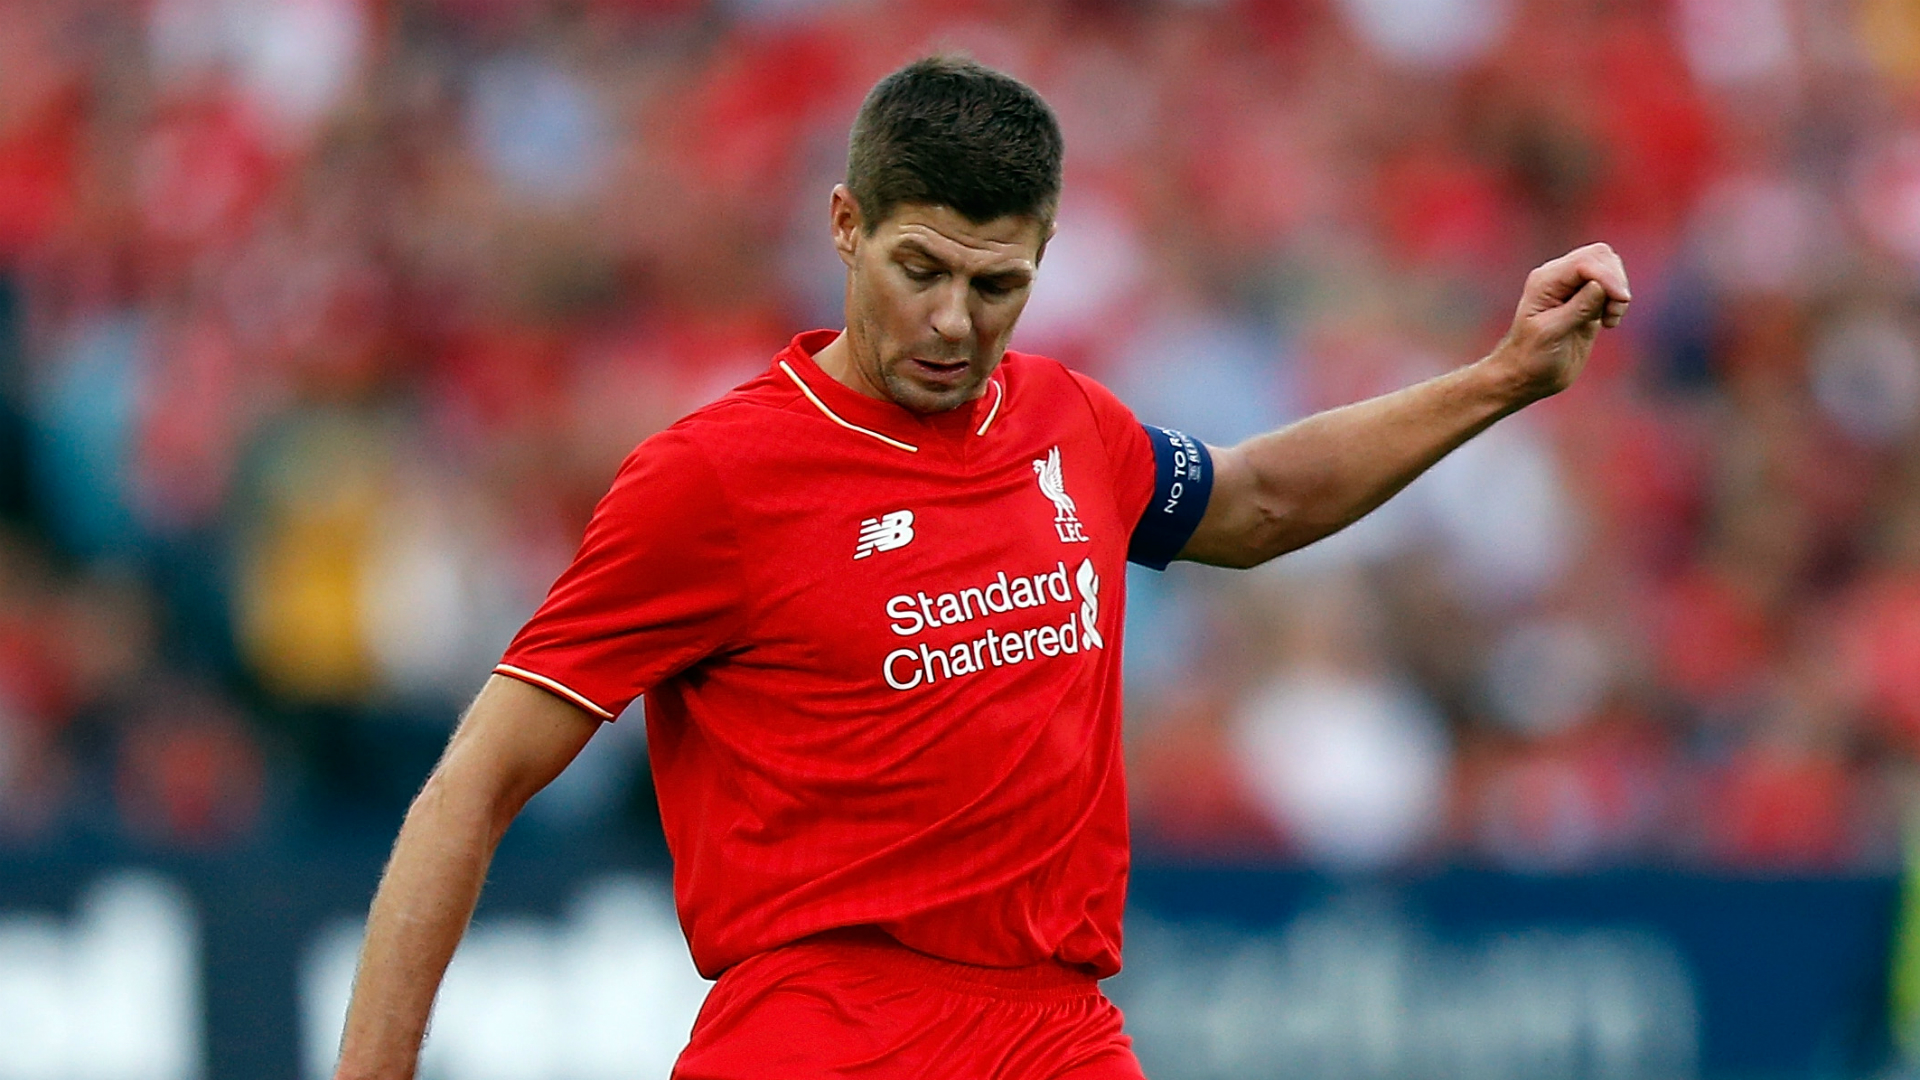 Confirmation Steven Gerrard will play under Jurgen Klopp for Liverpool